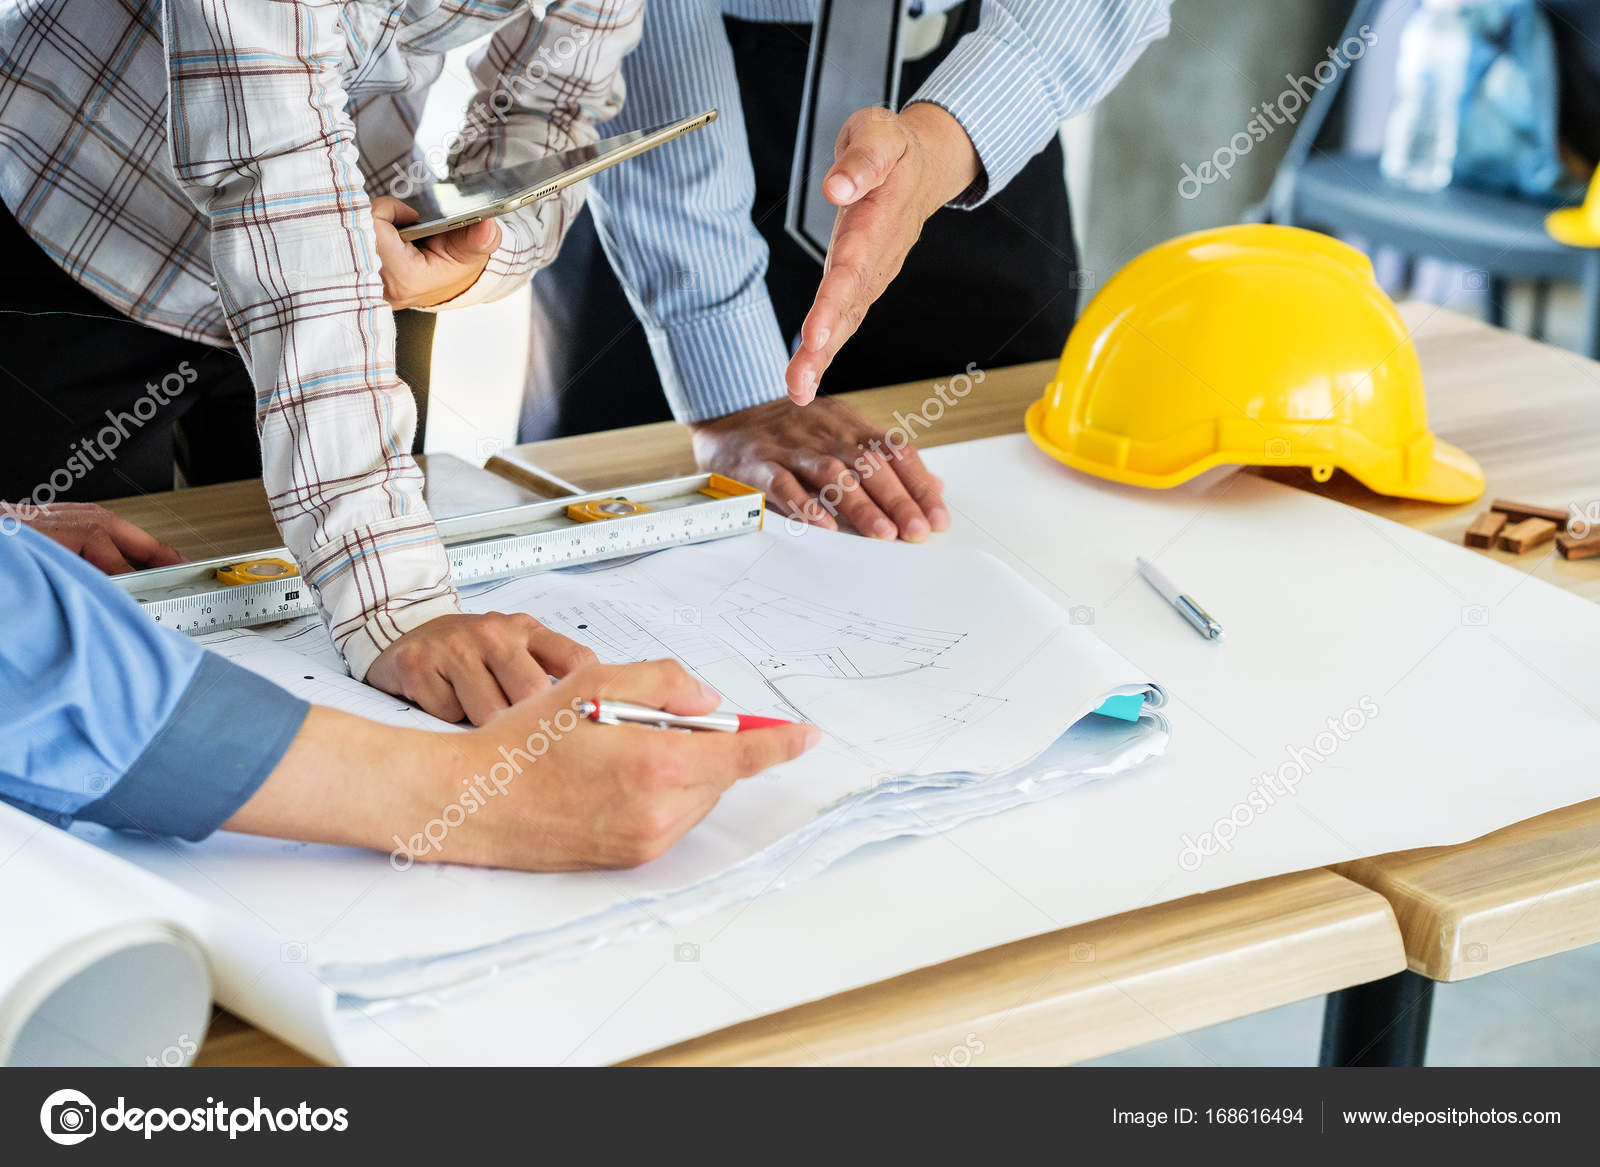 A group of engineers are looking at a blueprint for construction a group of engineers are looking at a blueprint for construction on the table photo by subinpumsom malvernweather Images